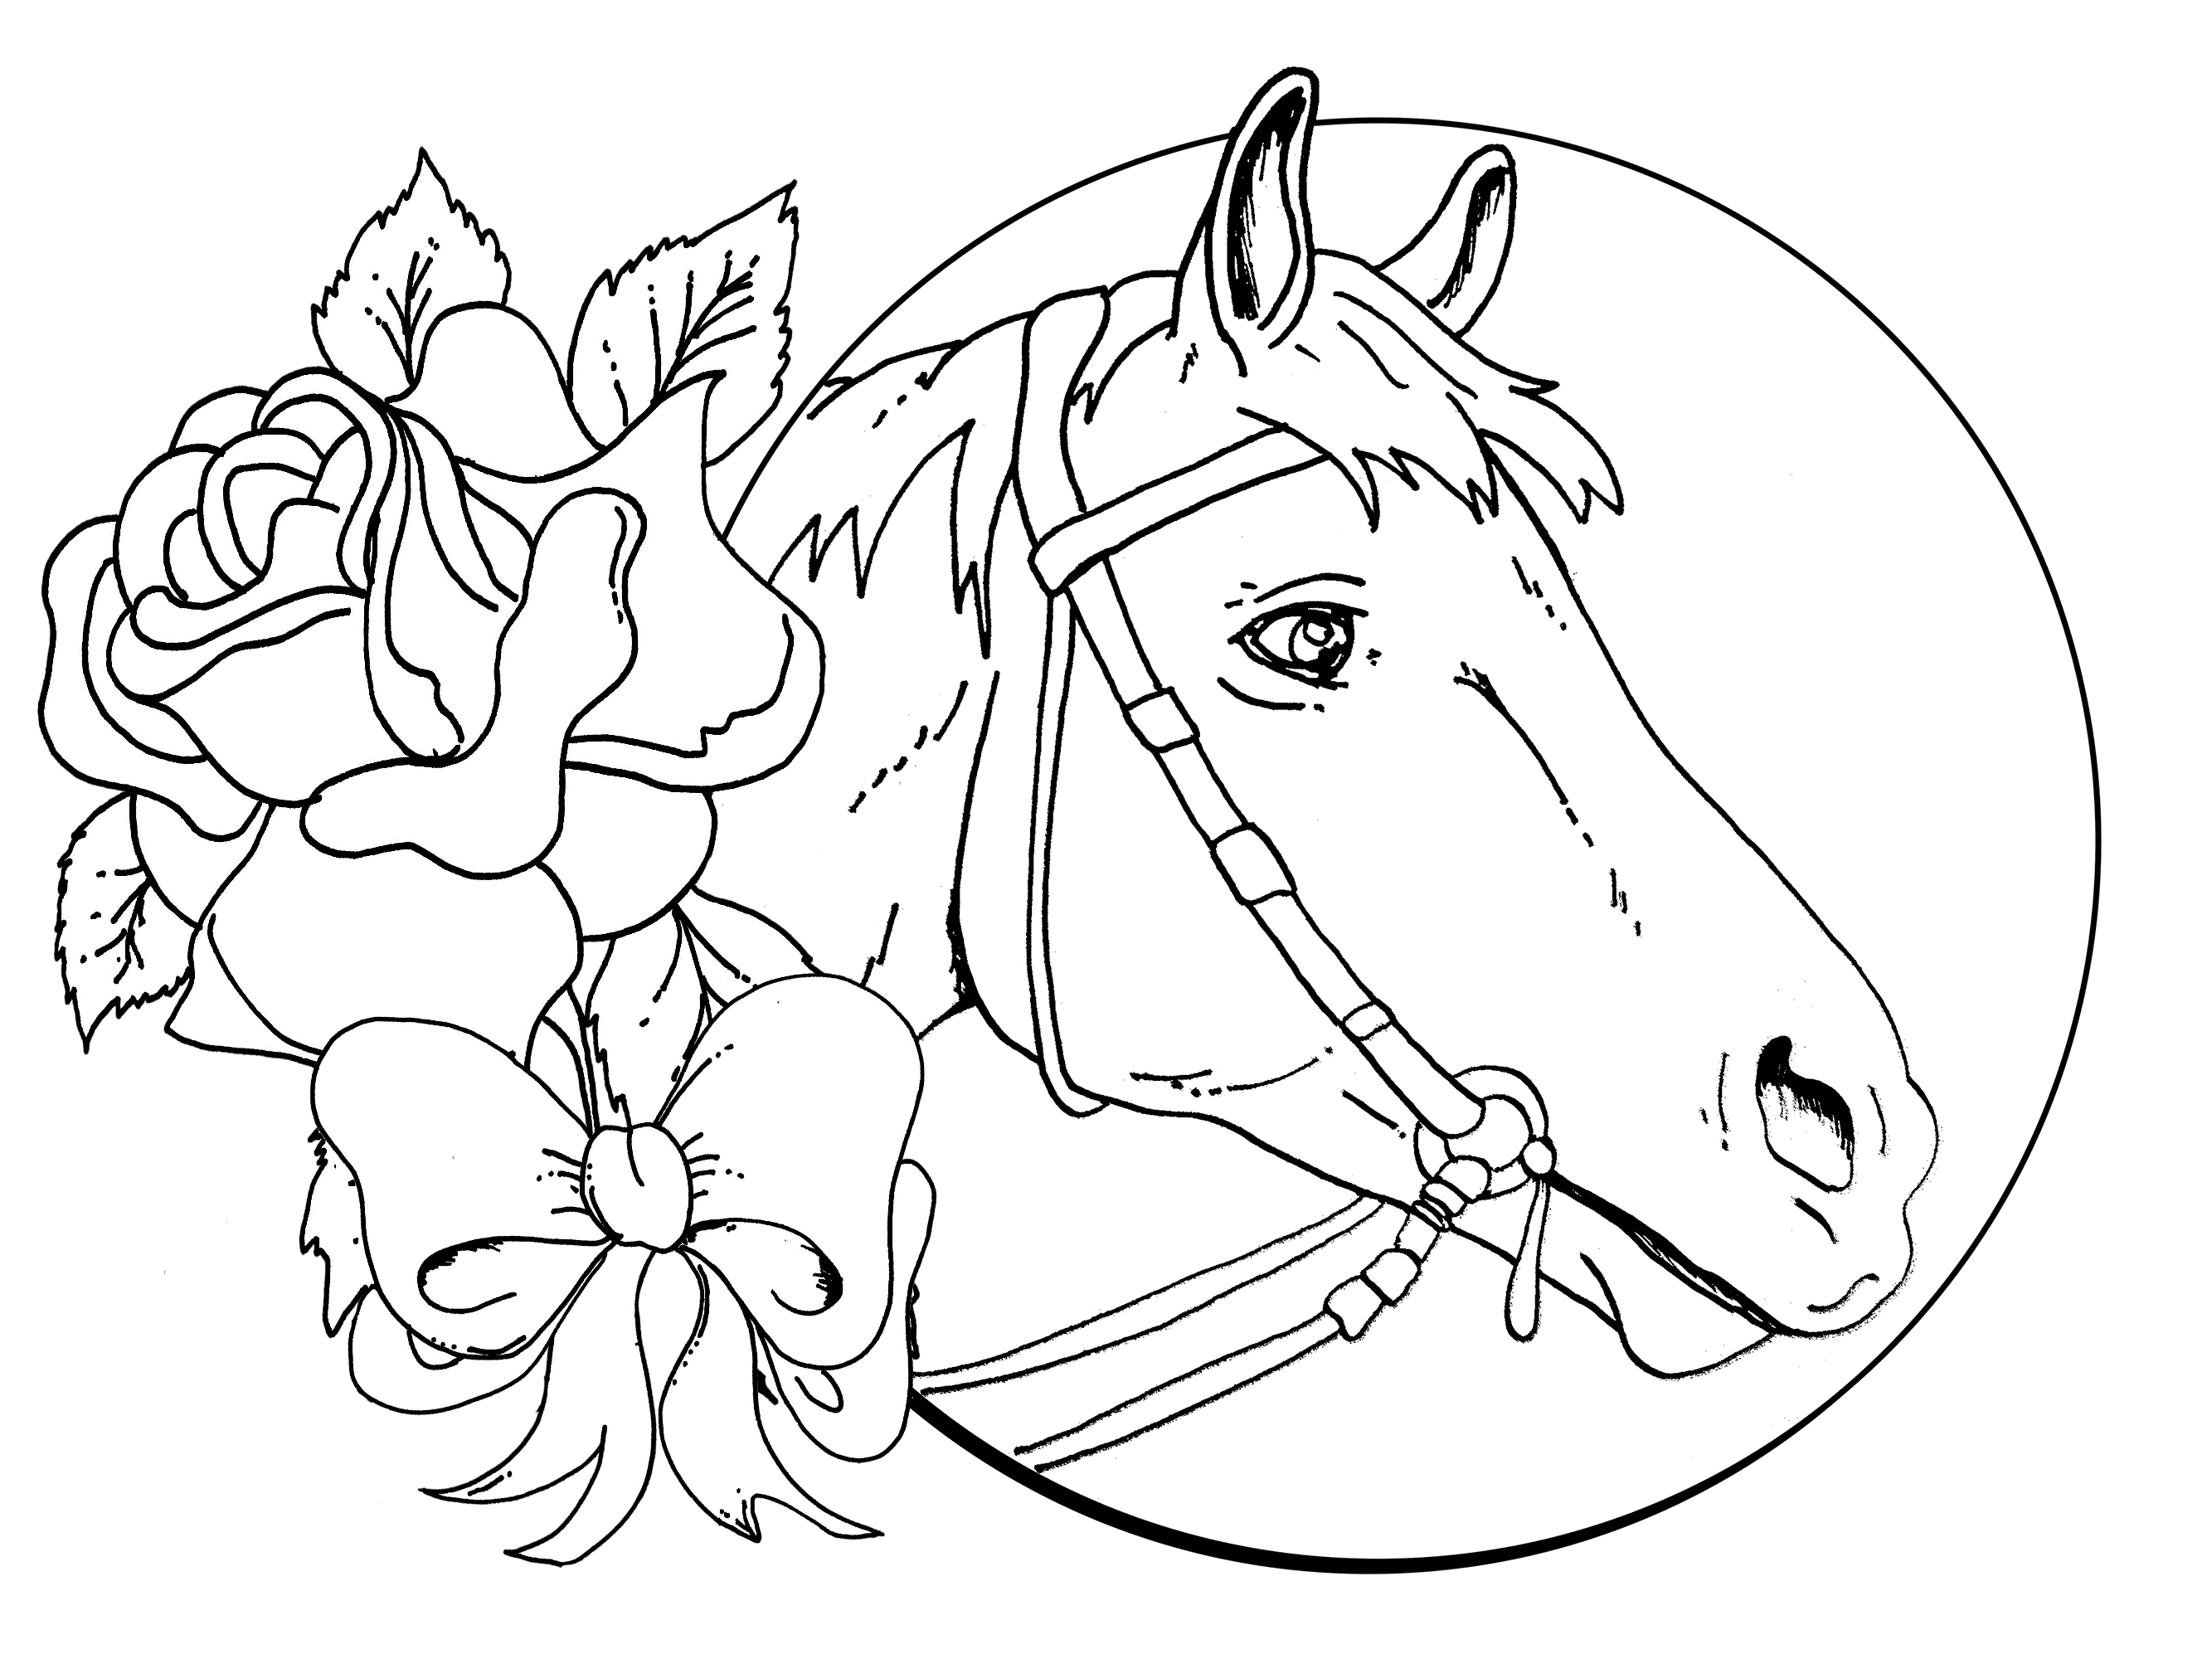 Coloring Pages for Girls - Dr. Odd